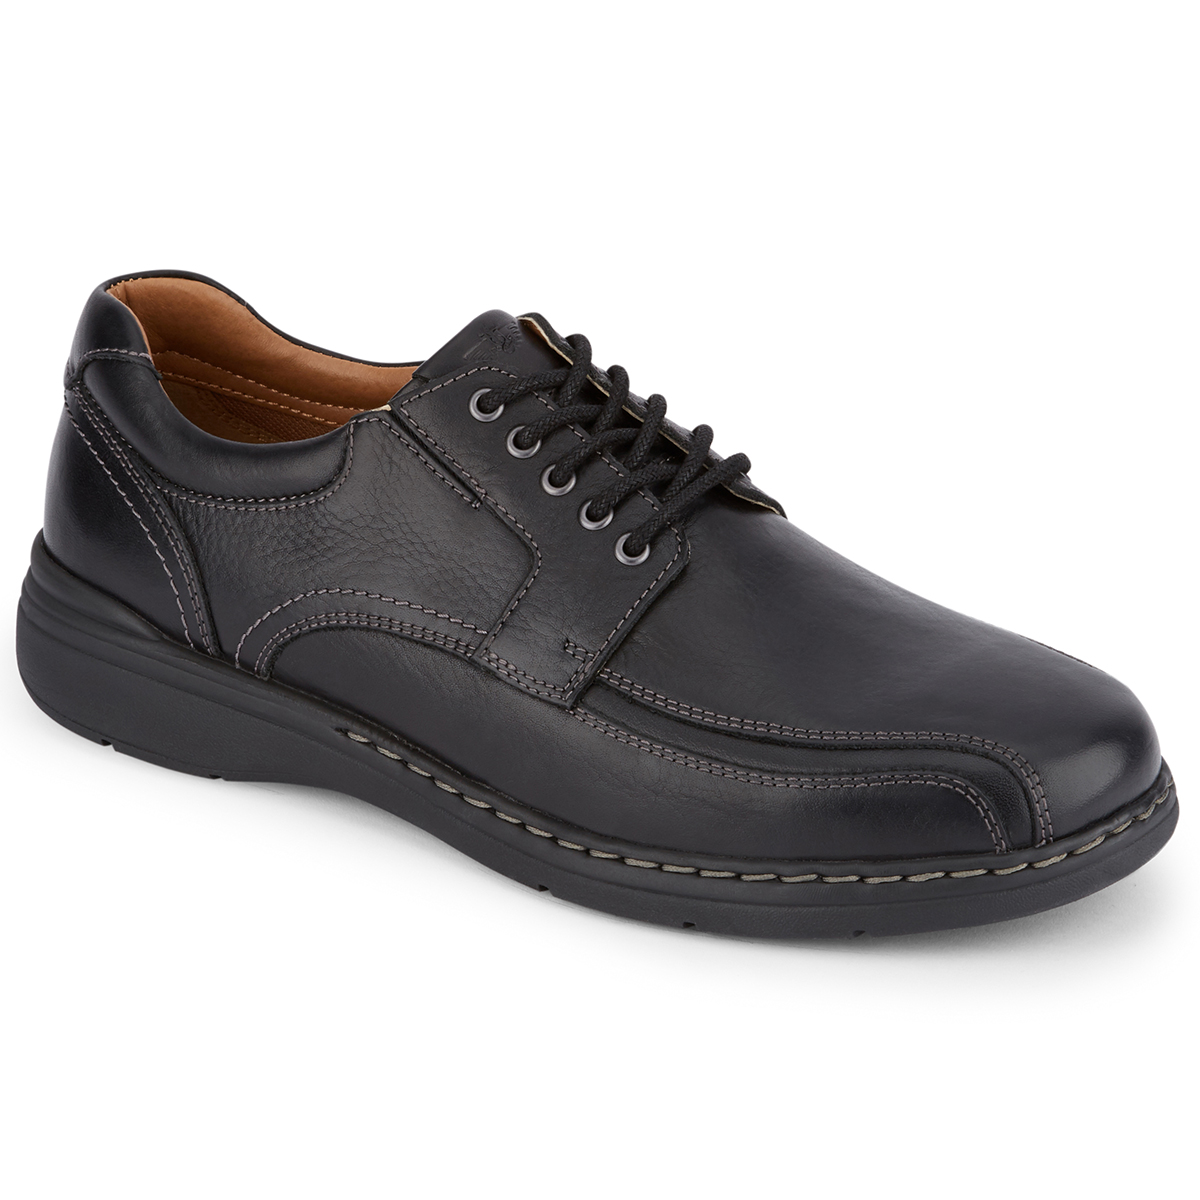 Dockers Men's Maclaren Oxford Shoe - Black, 11